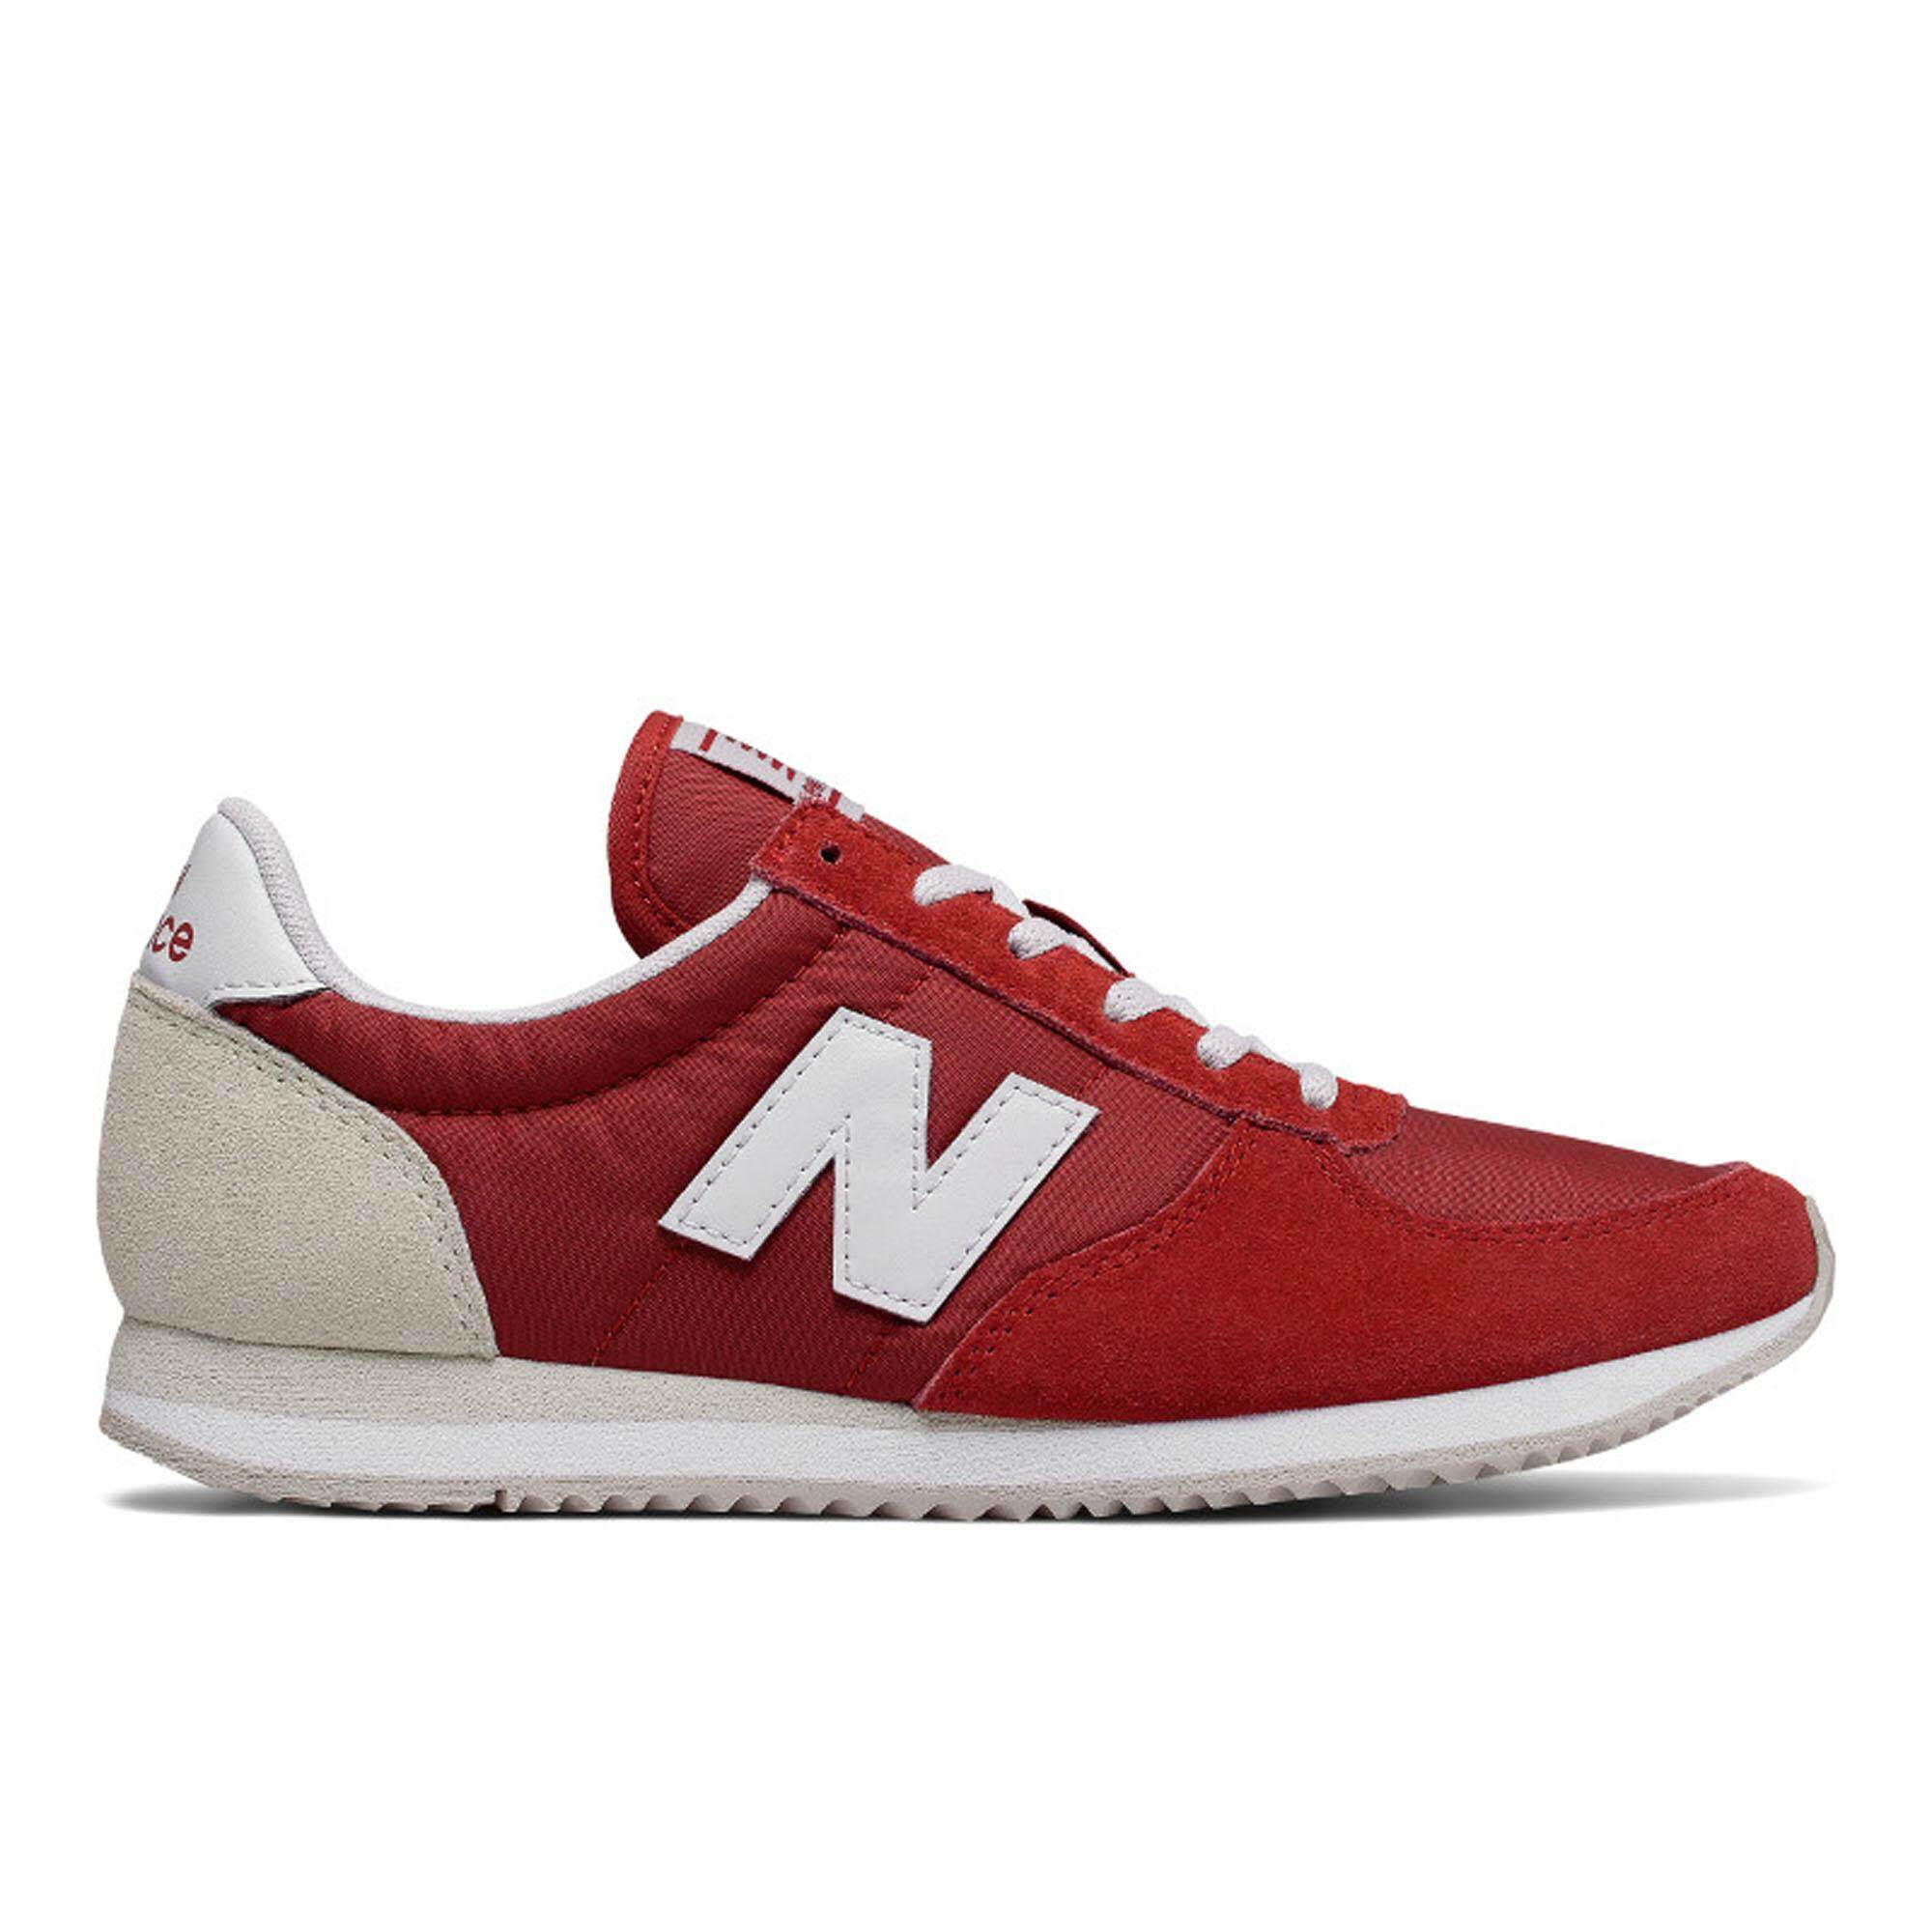 New Balance Shoes For The Best Price In Malaysia